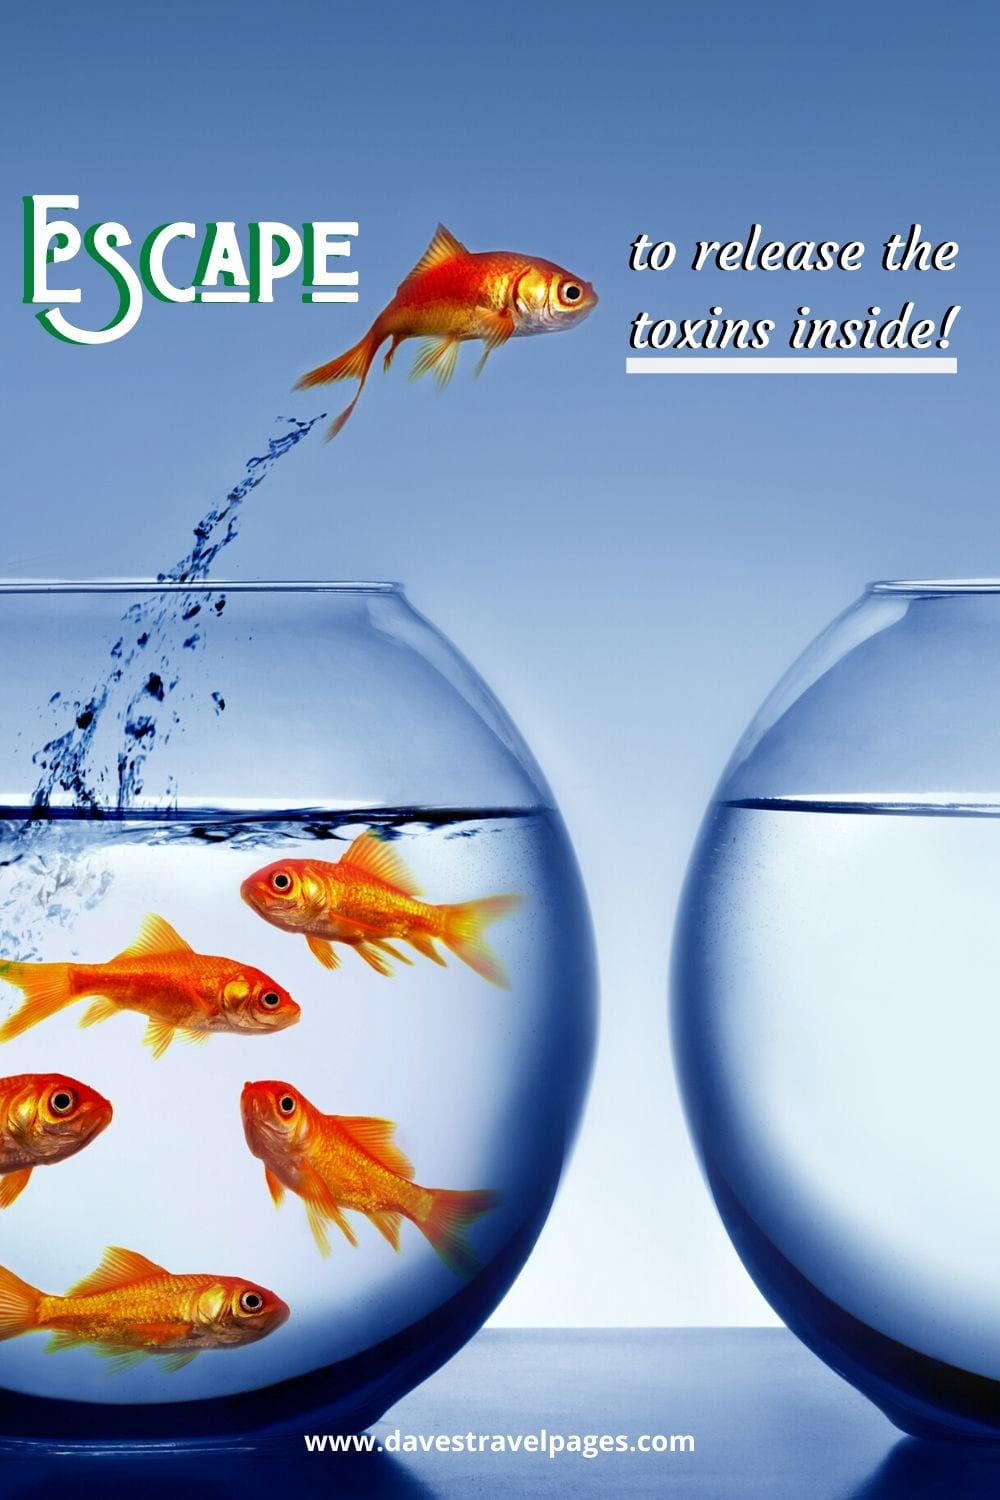 Escape to release the toxins inside!